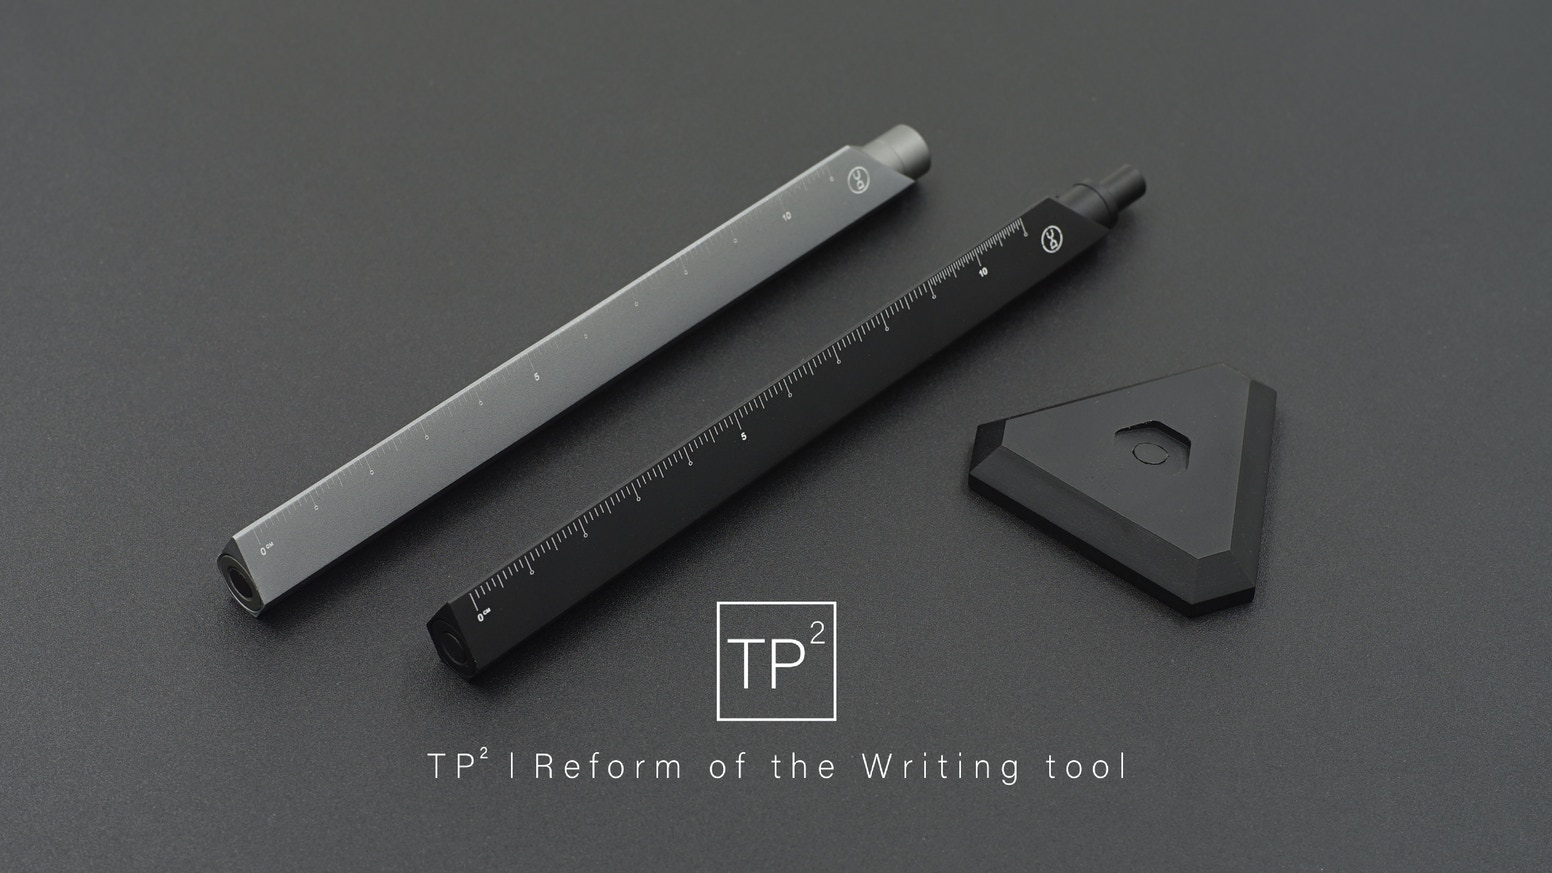 An aluminium Pen/cil that compatible with ballpoint and mechanical pencil, cm & Inch dual scale ruler